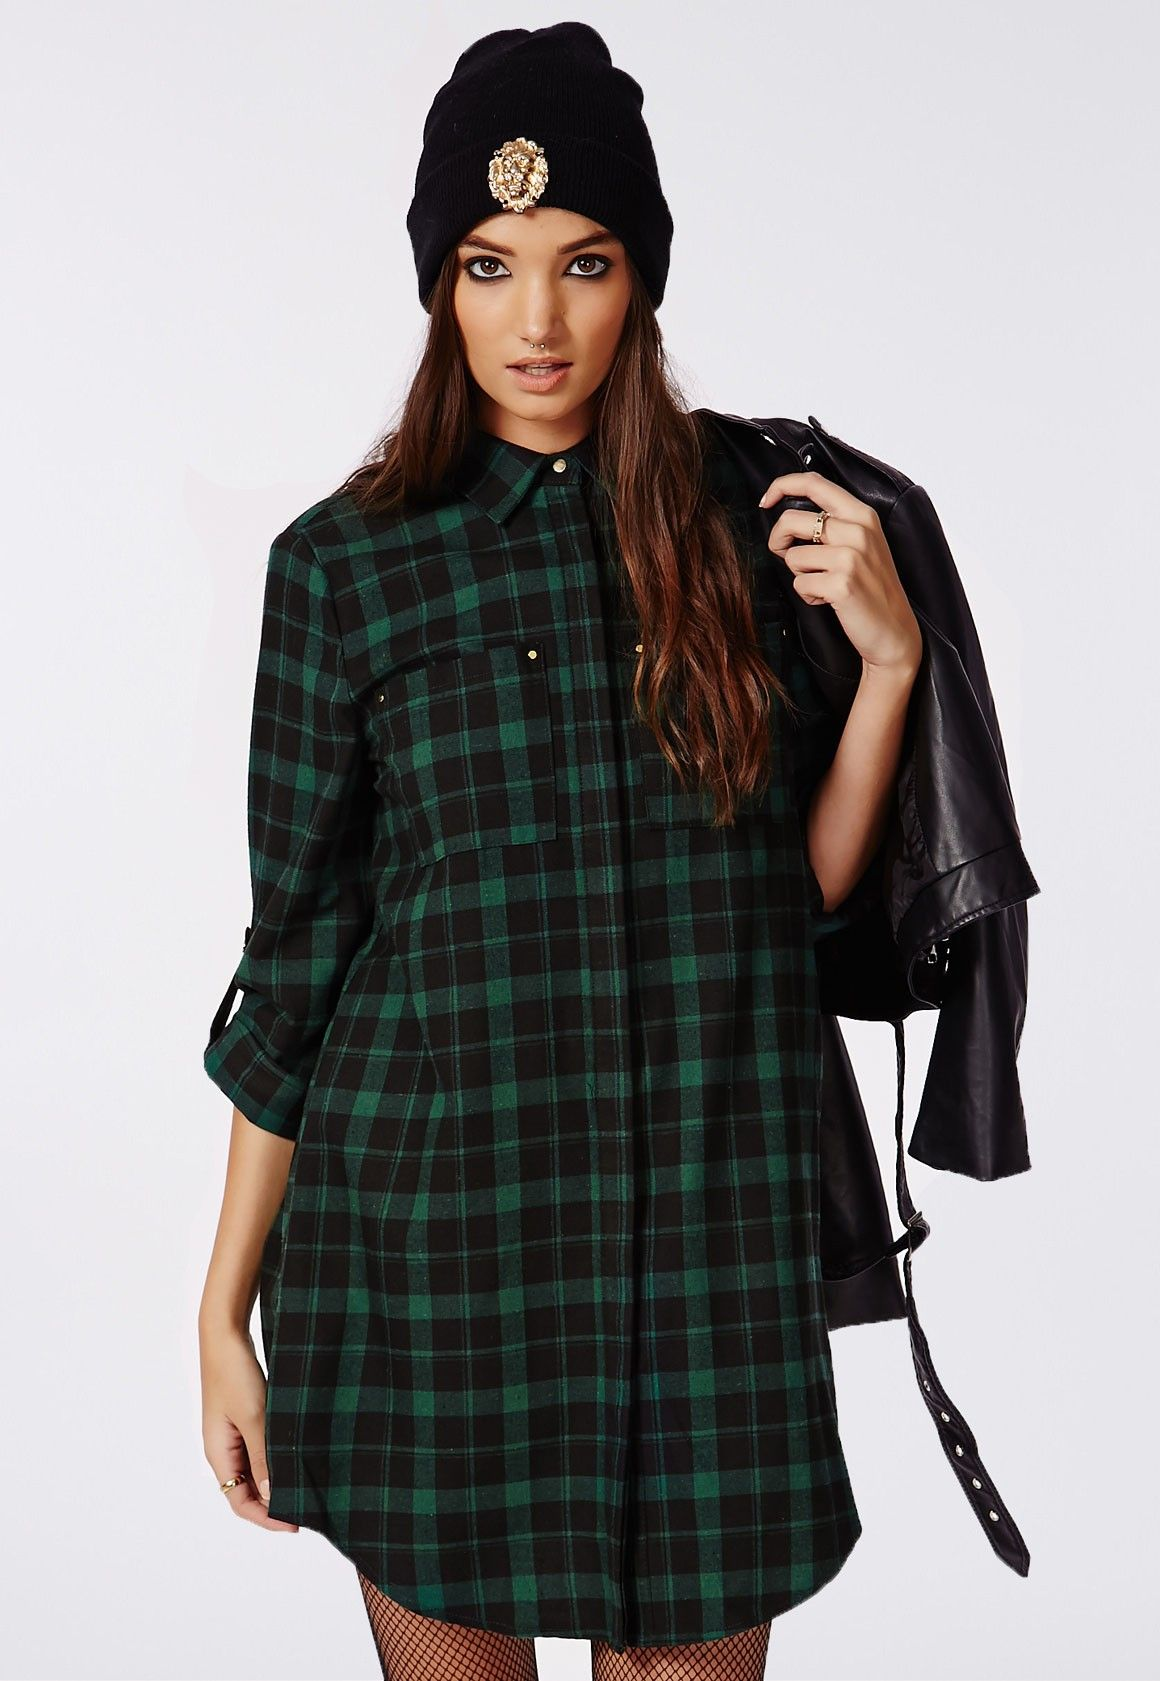 ad7d1dd6b62 Holly Oversized Longline Shirt Dress Green Check - Dresses ...